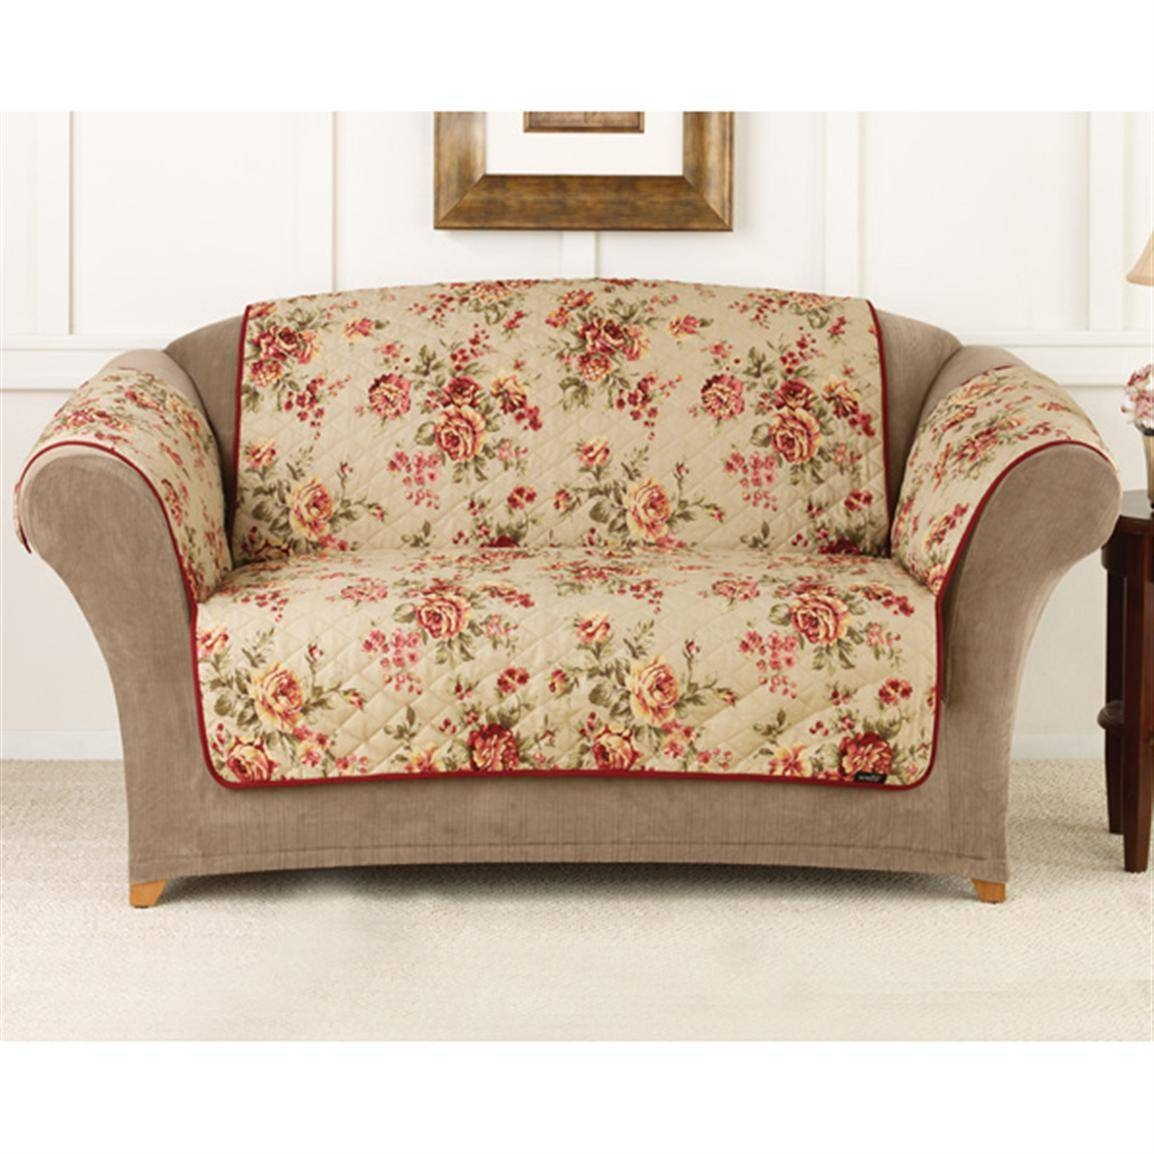 Sure Fit® Lexington Floral Sofa Pet Cover - 292857, Furniture with Floral Slipcovers (Image 12 of 15)